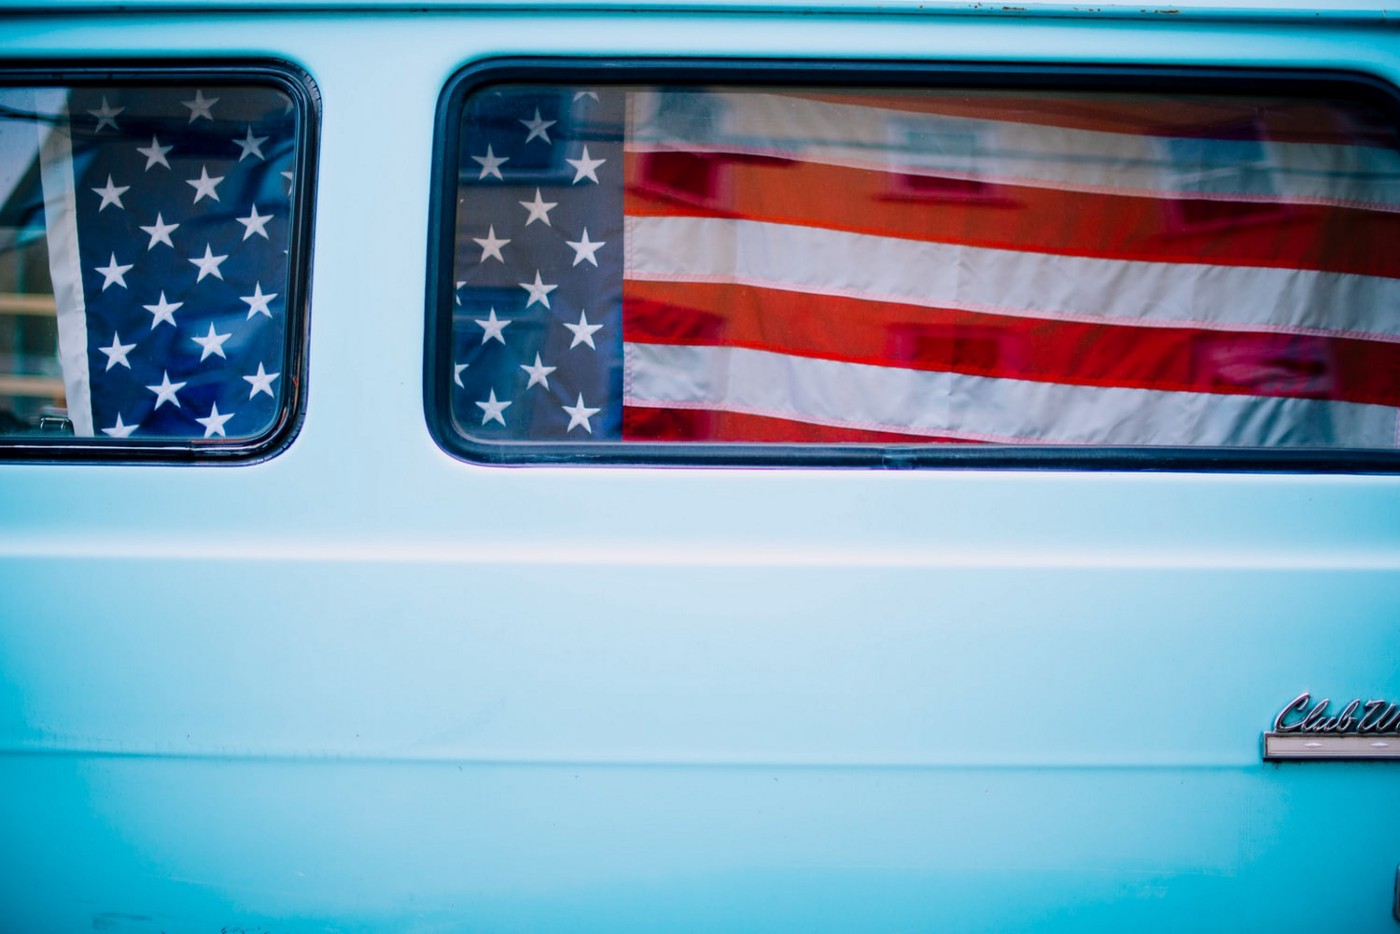 Photo of an American flag seen through a van window